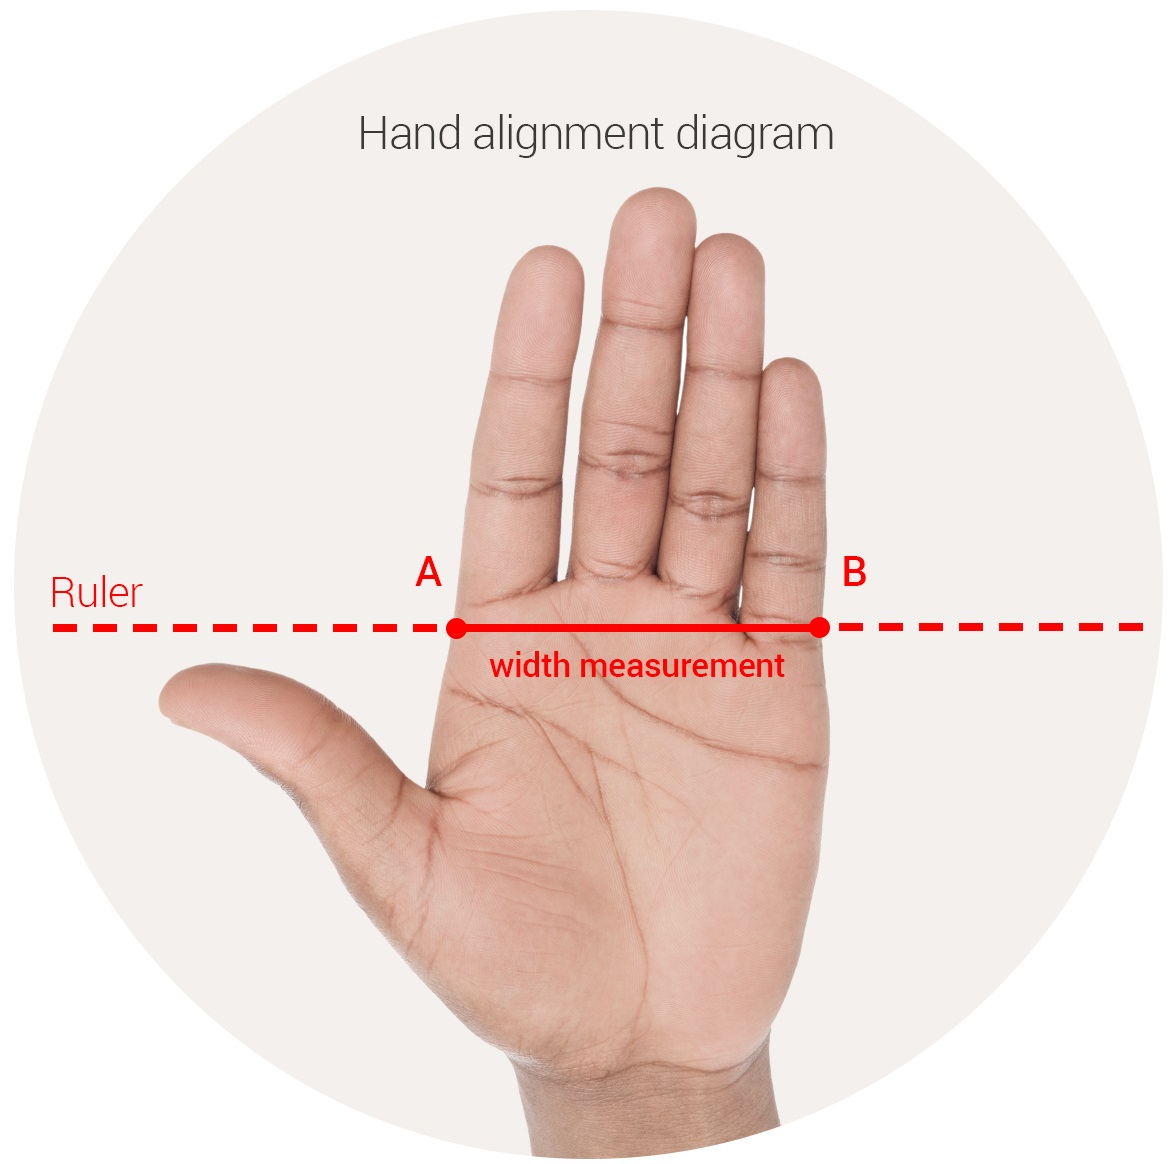 Measure your hand by printing this image and placing it on it. Use points A & B as reference points to measure the width of your hand.